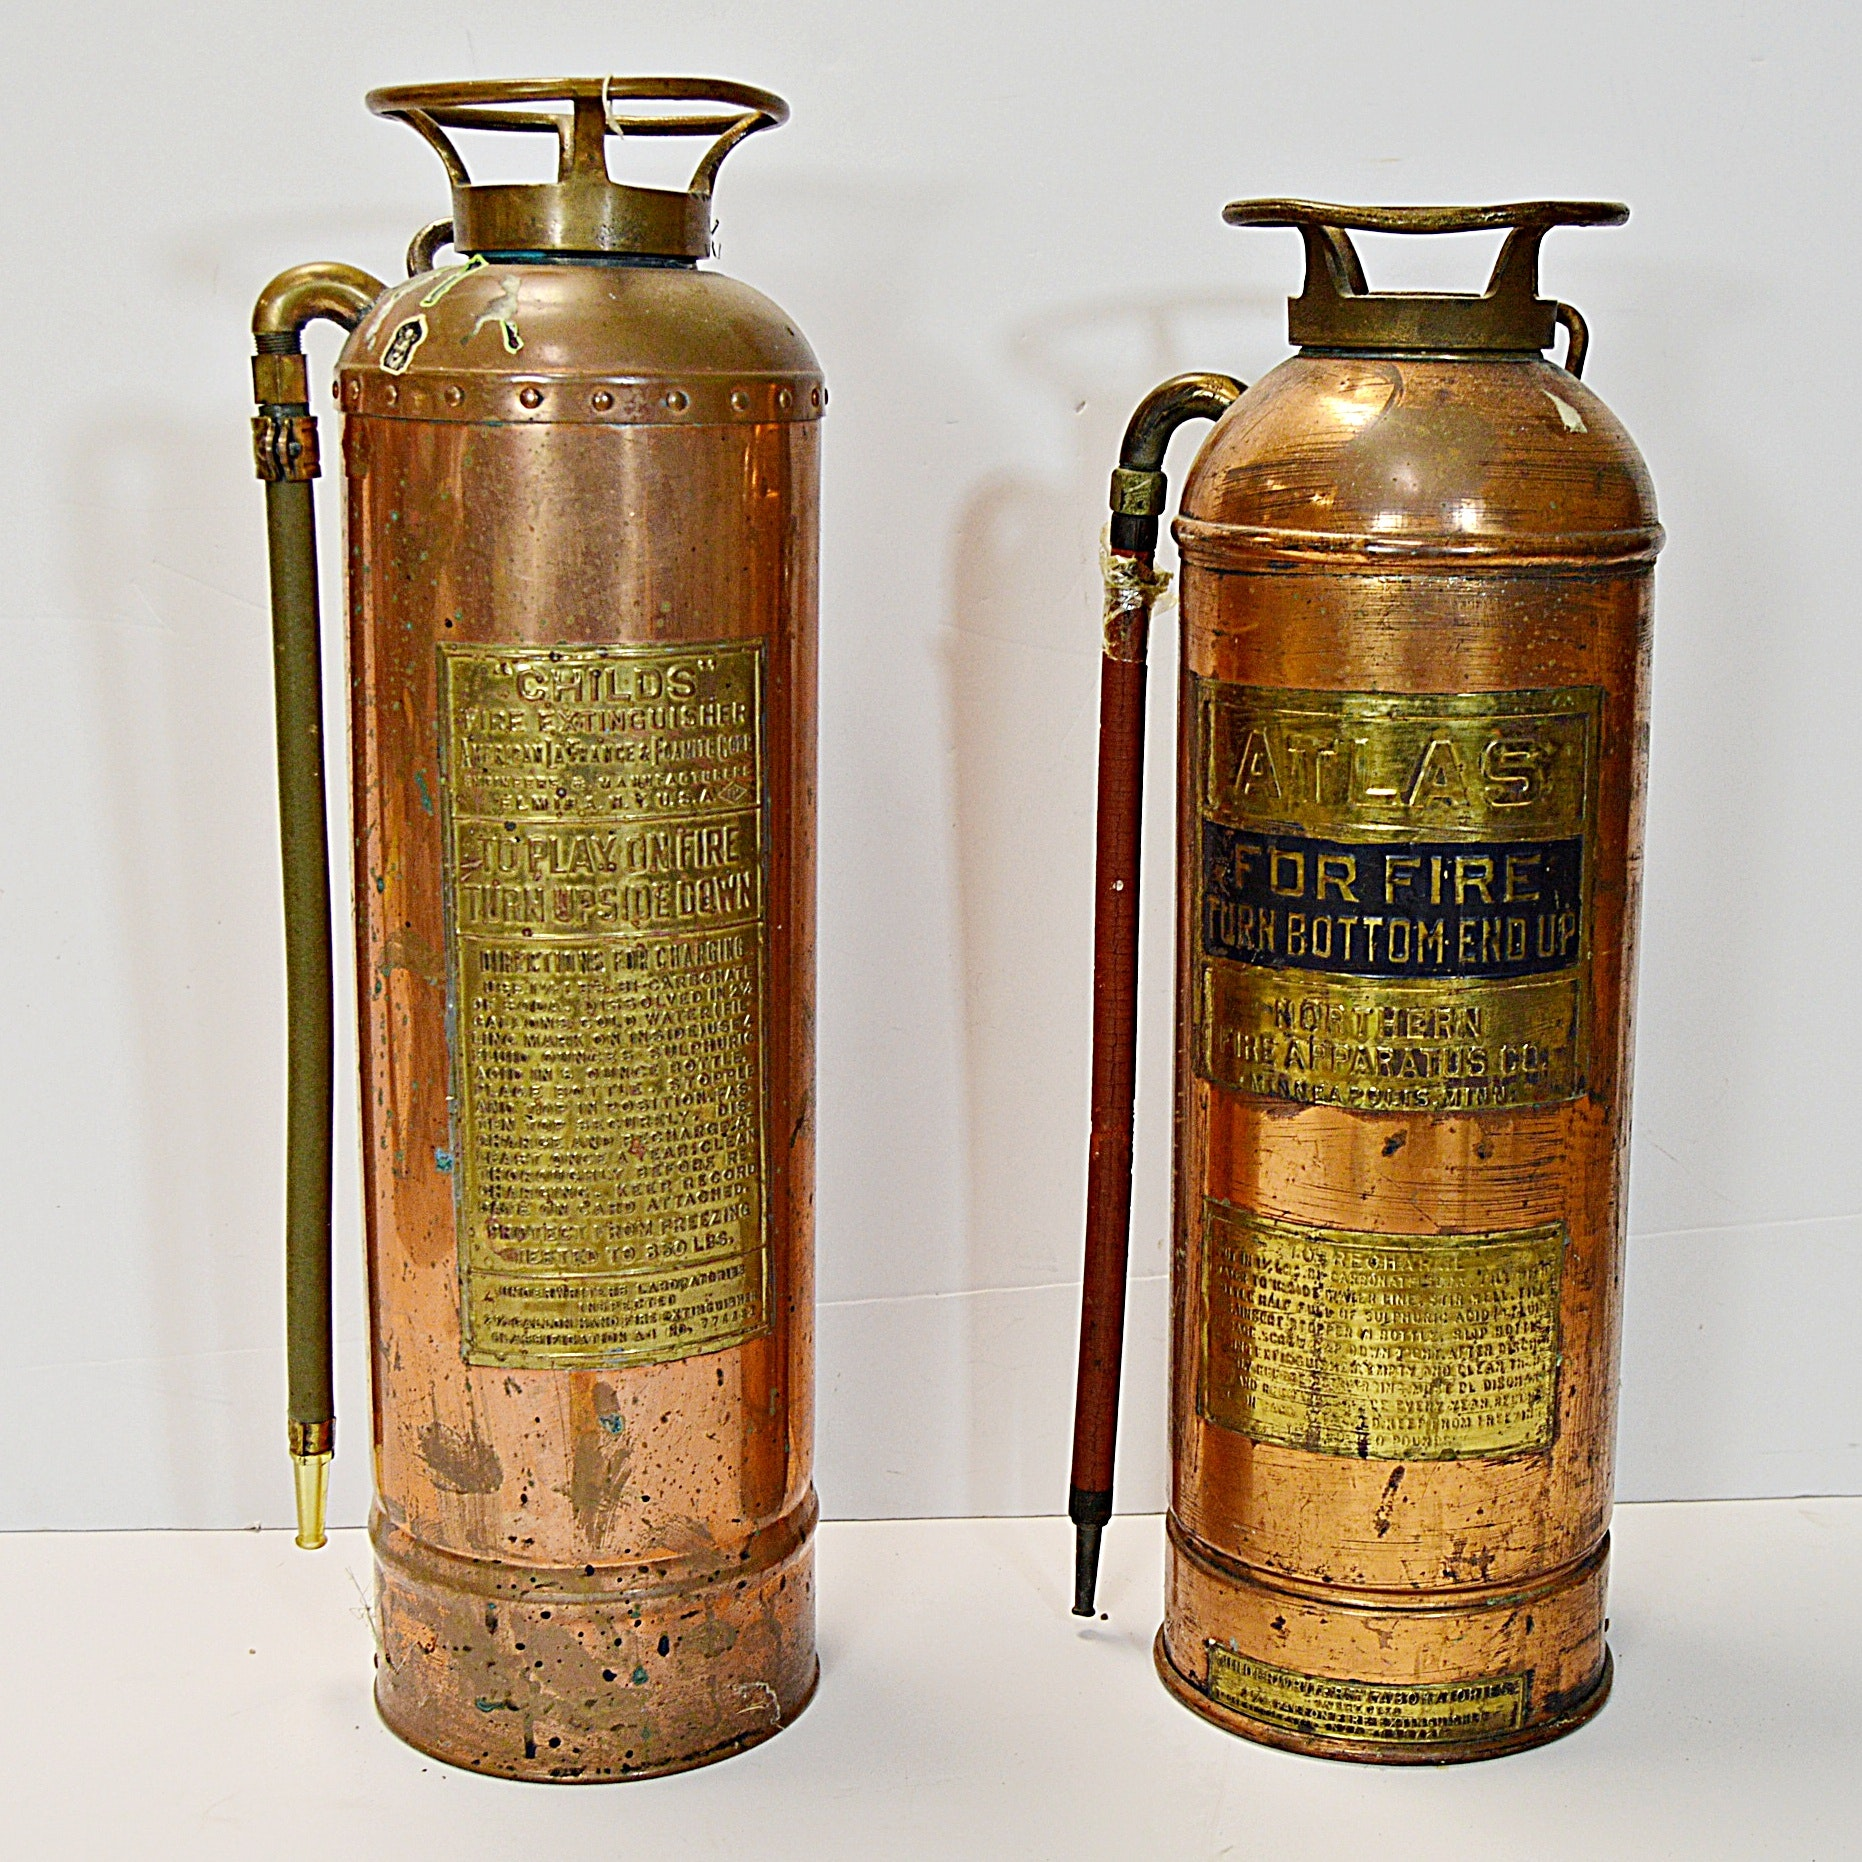 Vintage Copper and Brass Fire Extinguishers